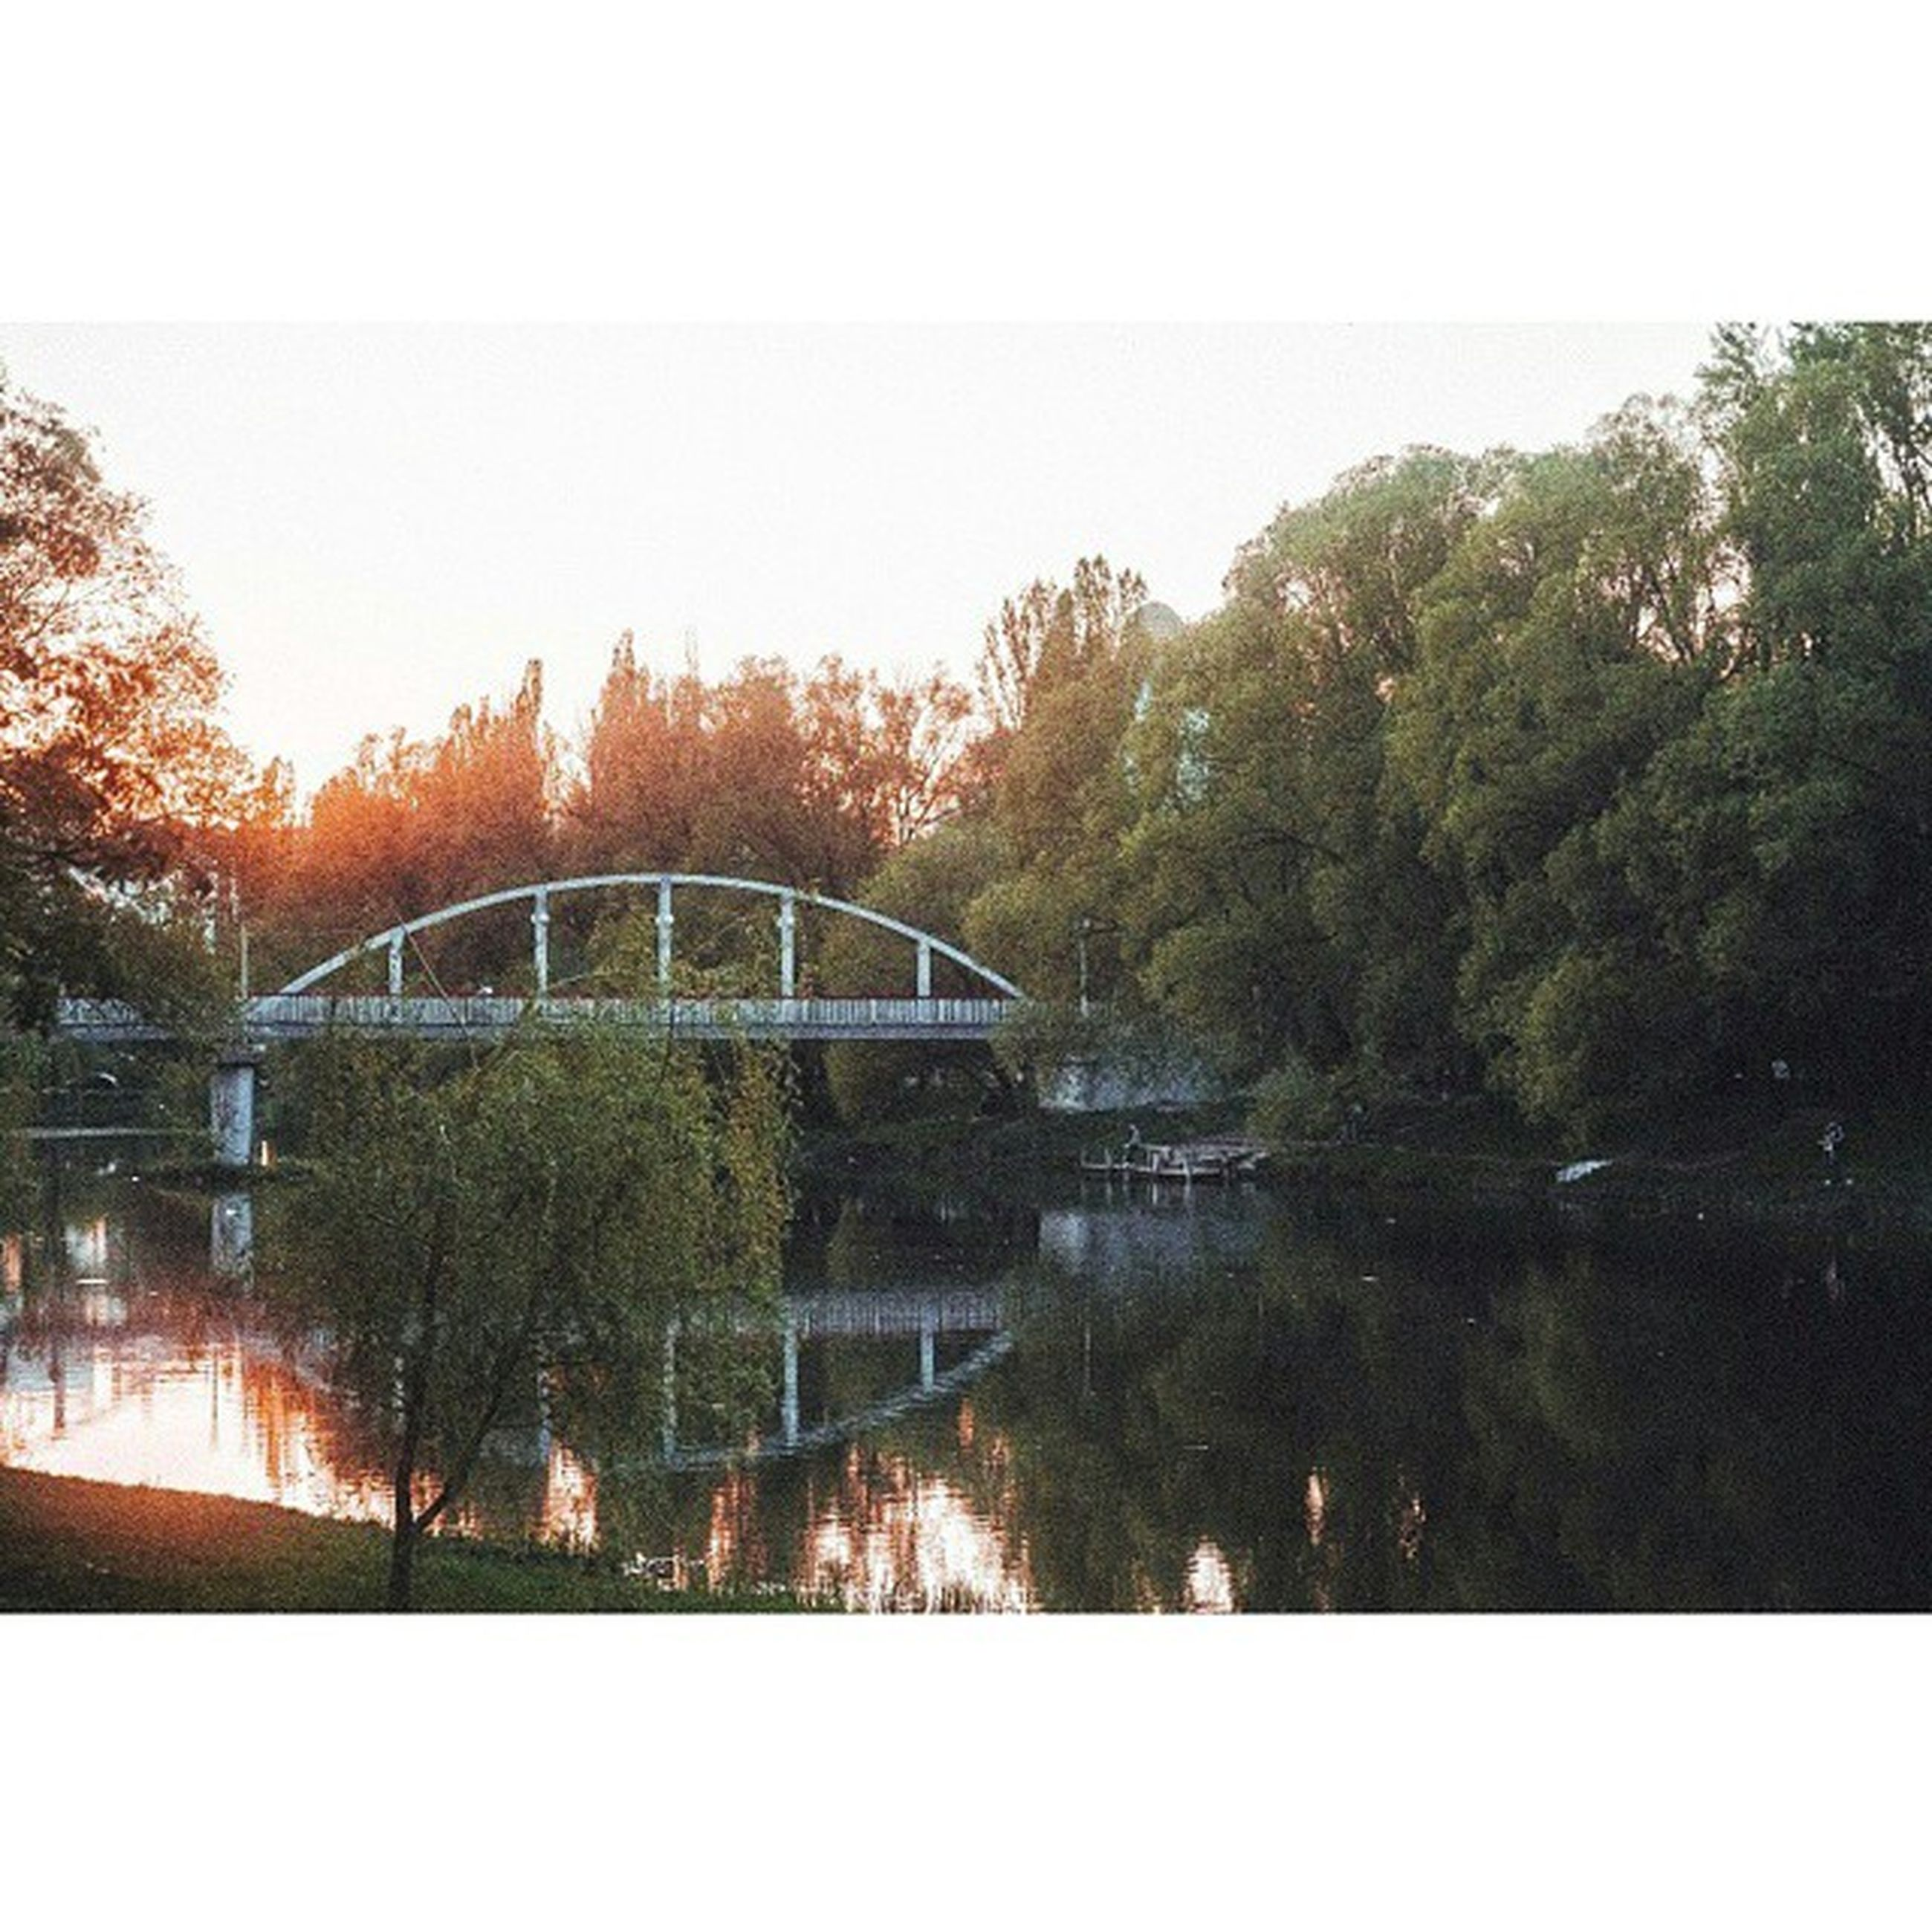 tree, water, reflection, bridge - man made structure, connection, built structure, architecture, river, transfer print, bridge, arch bridge, clear sky, auto post production filter, sky, lake, waterfront, tranquility, nature, canal, arch